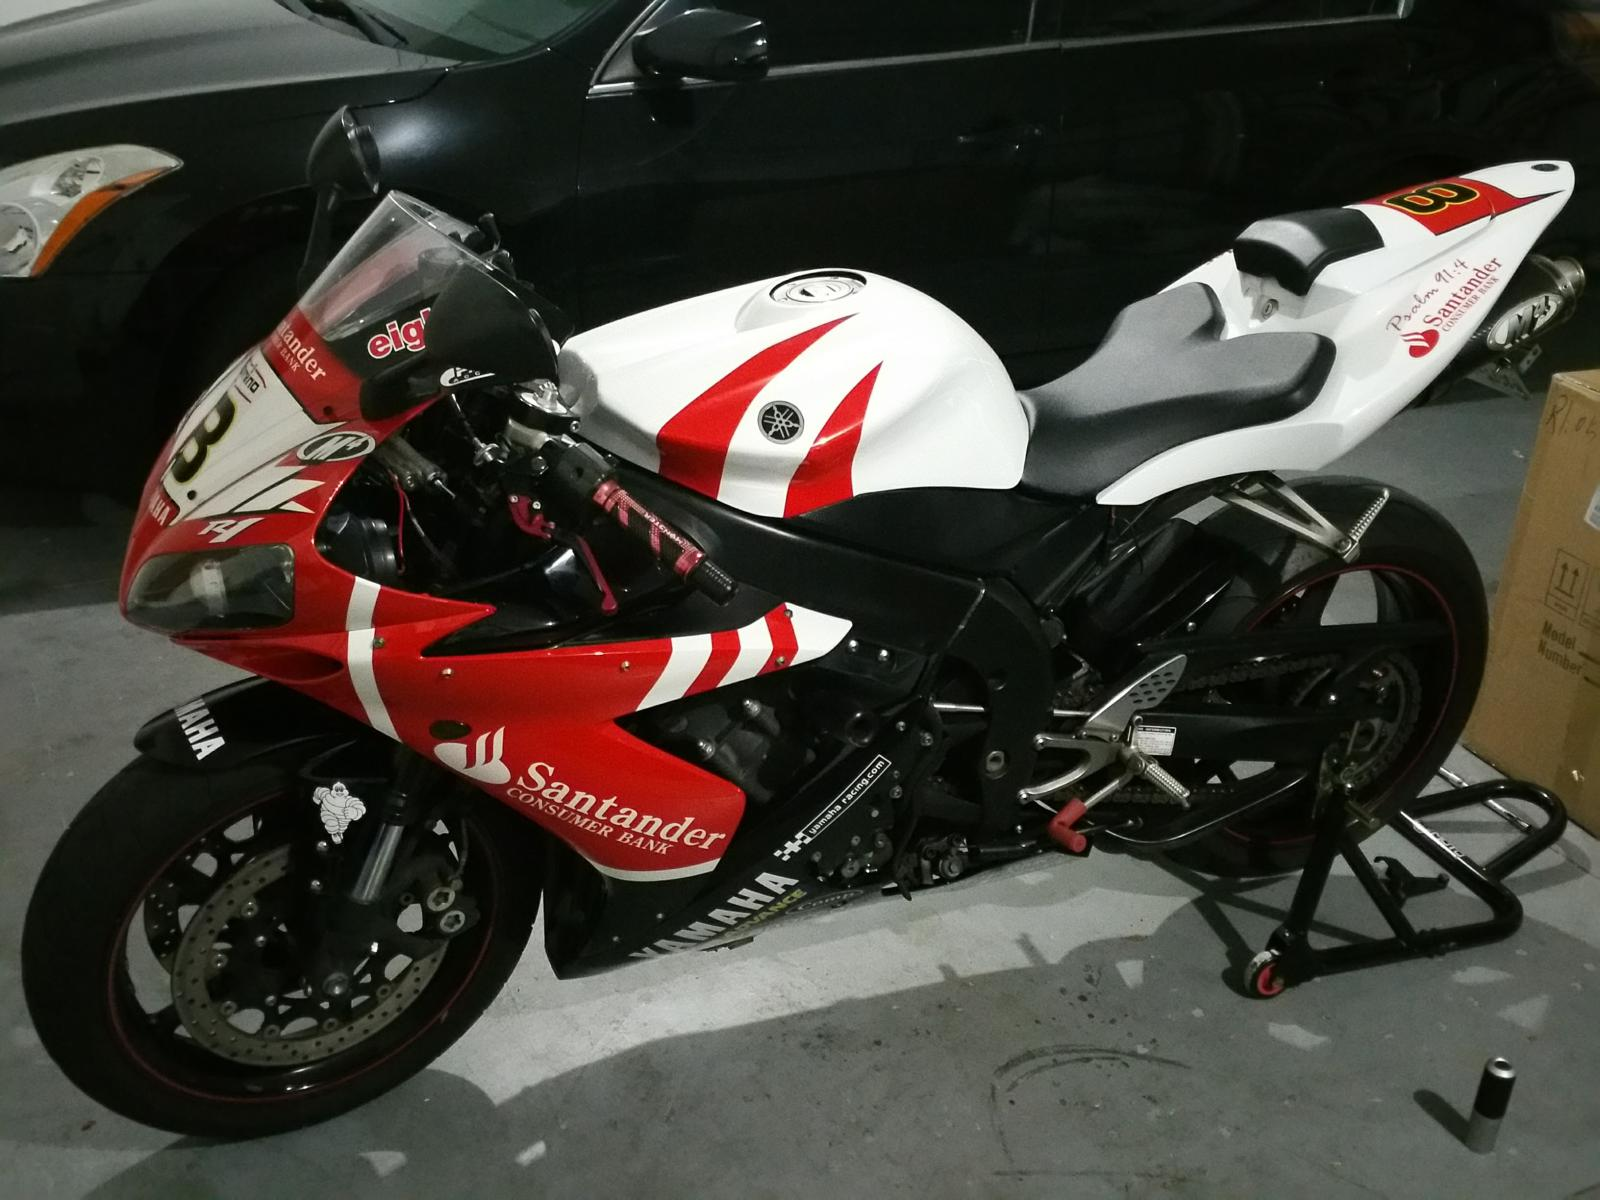 New skin for my 05 R1 - Yamaha R1 Forum: YZF-R1 Forums